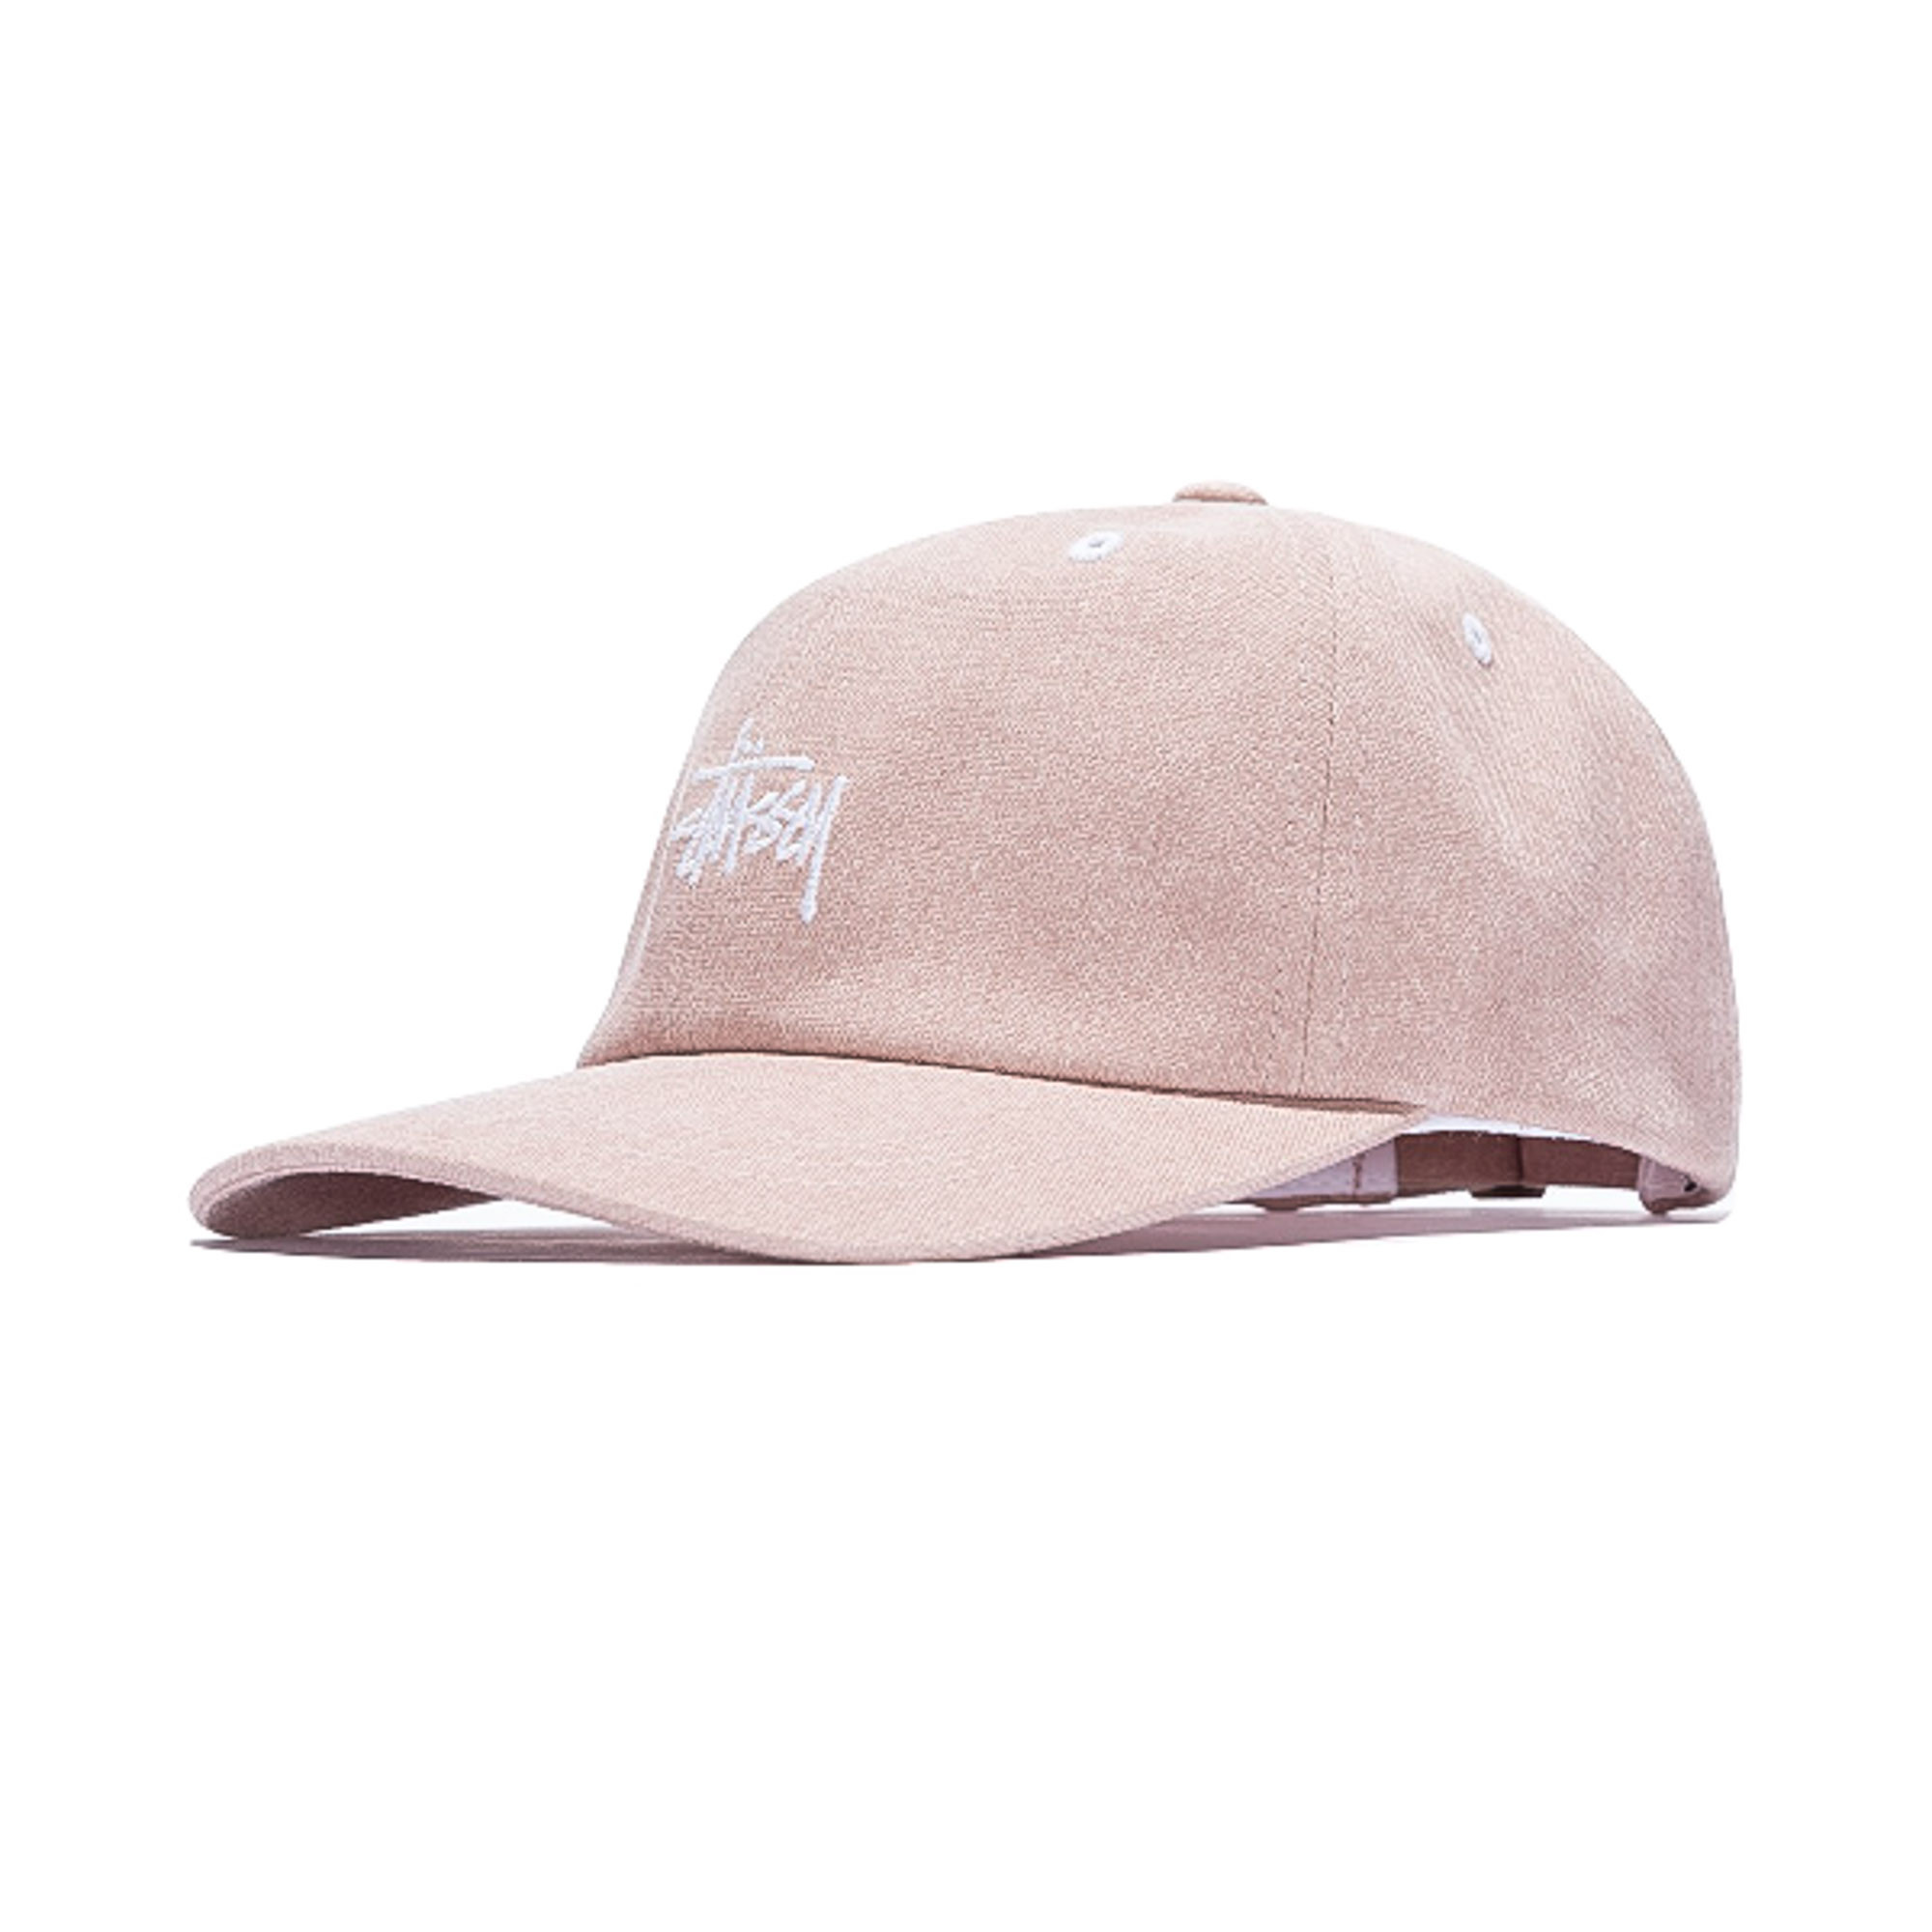 Stussy Washed Stock Low Pro Cap Pink 0a8557f502b